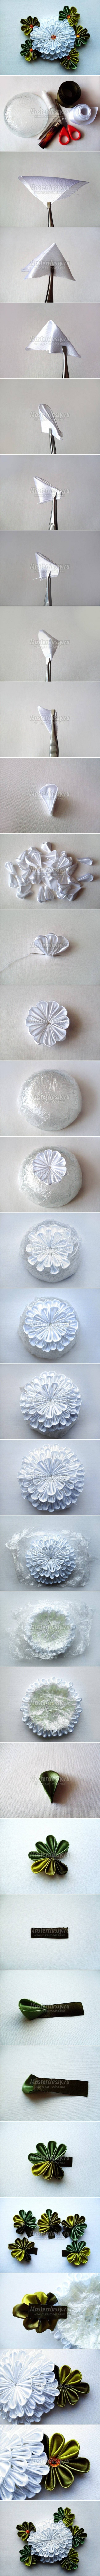 DIY-White-Chrysanthemum-Flower.jpg